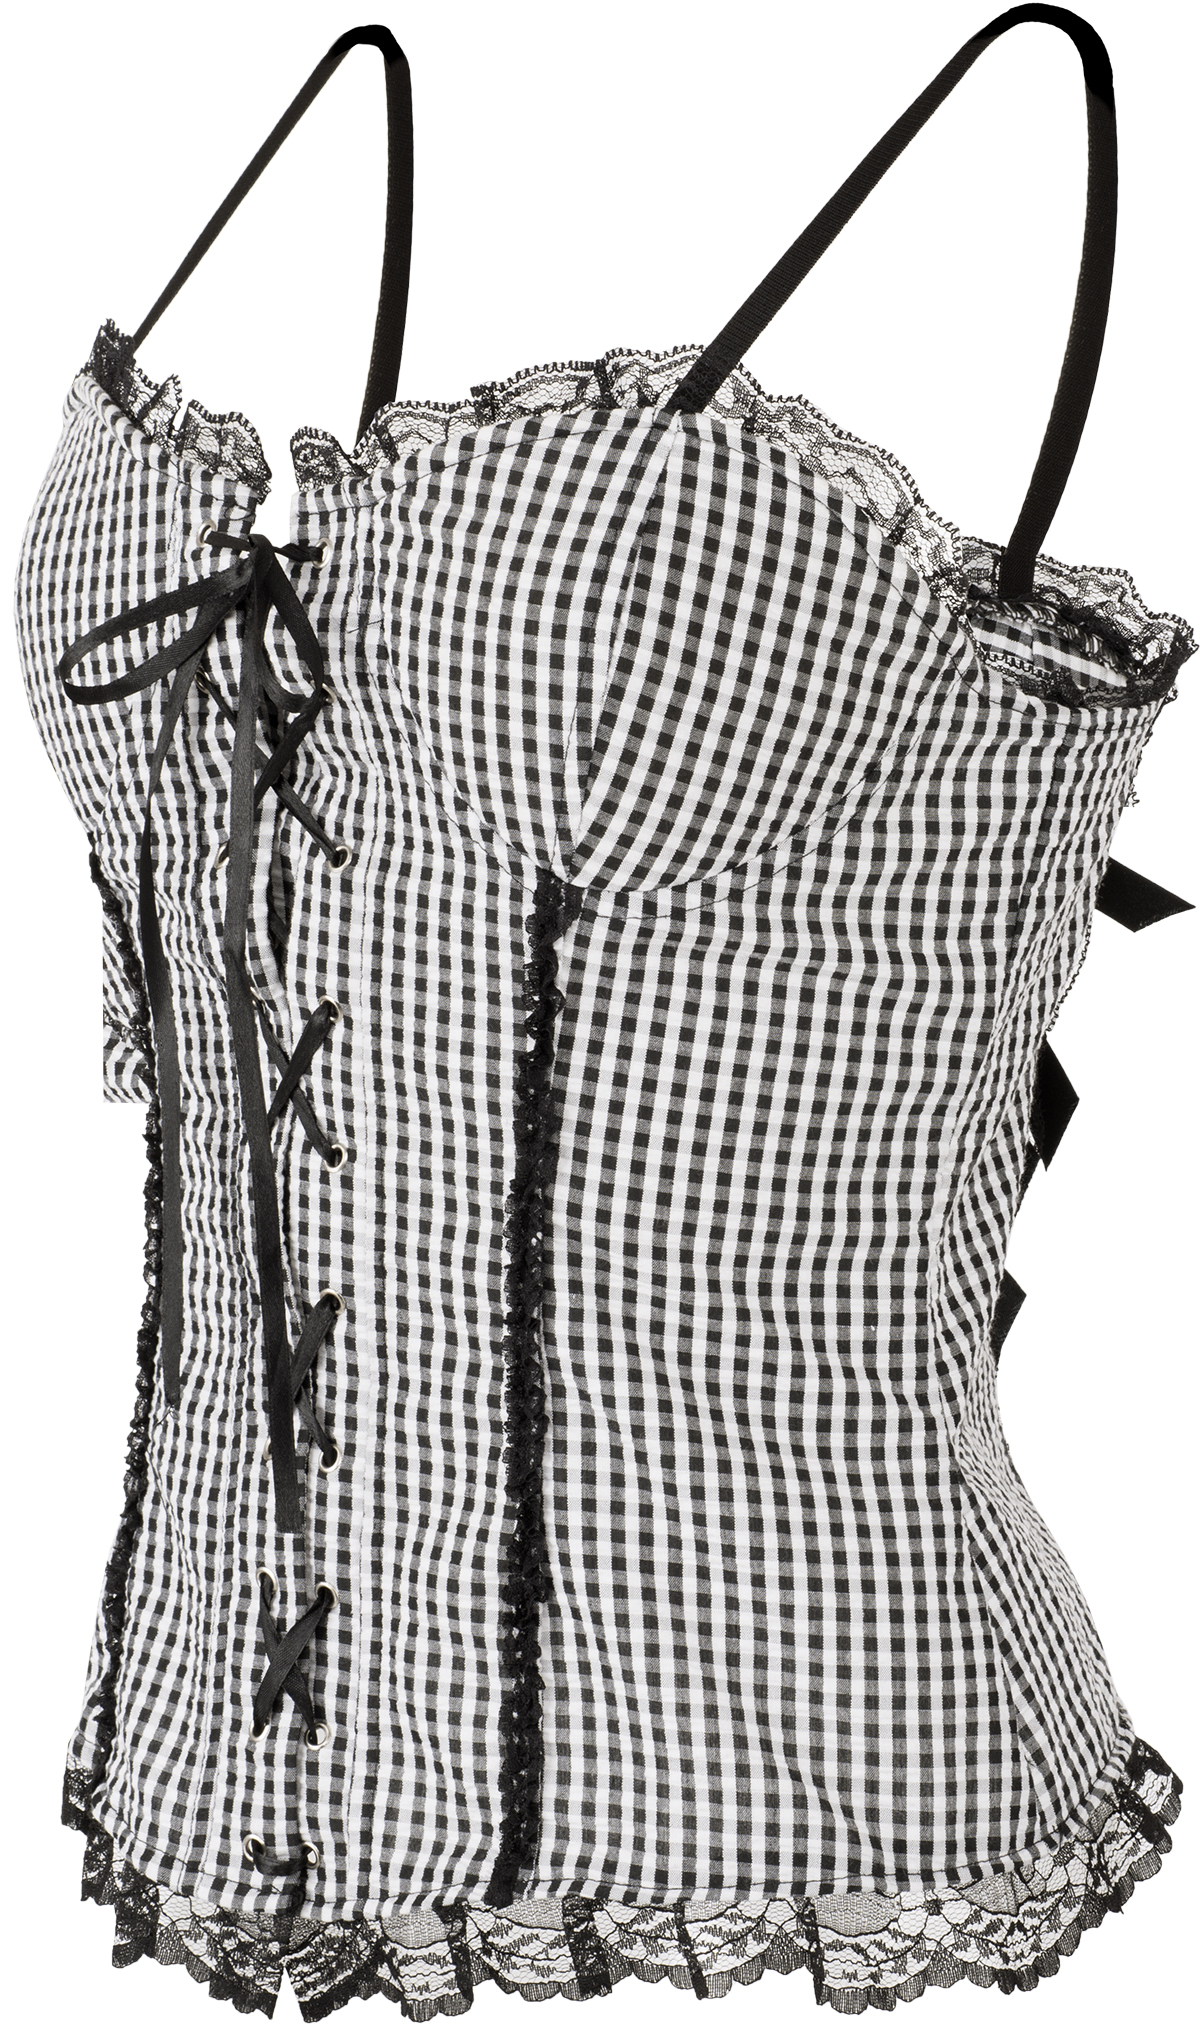 Vintage MAHARA Check PEPITA Gingham LACE UP Spitze CORSAGE TOP Rockabilly